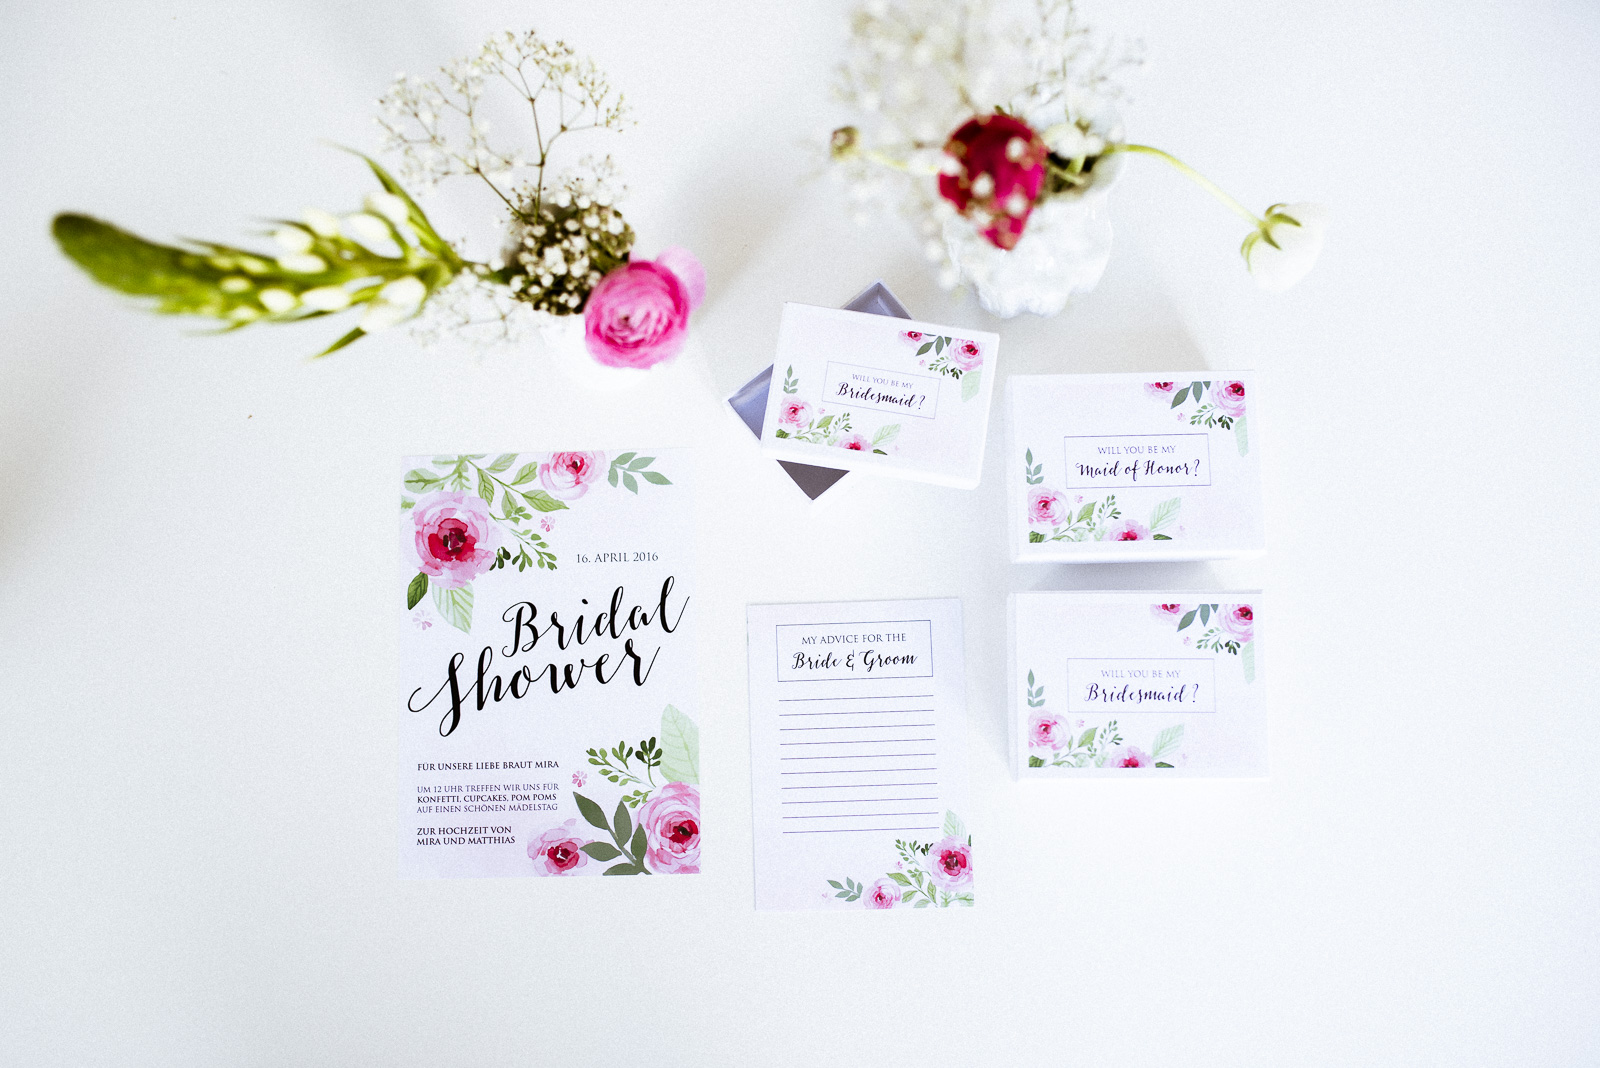 2016 - Bridal Showerlulugraphie